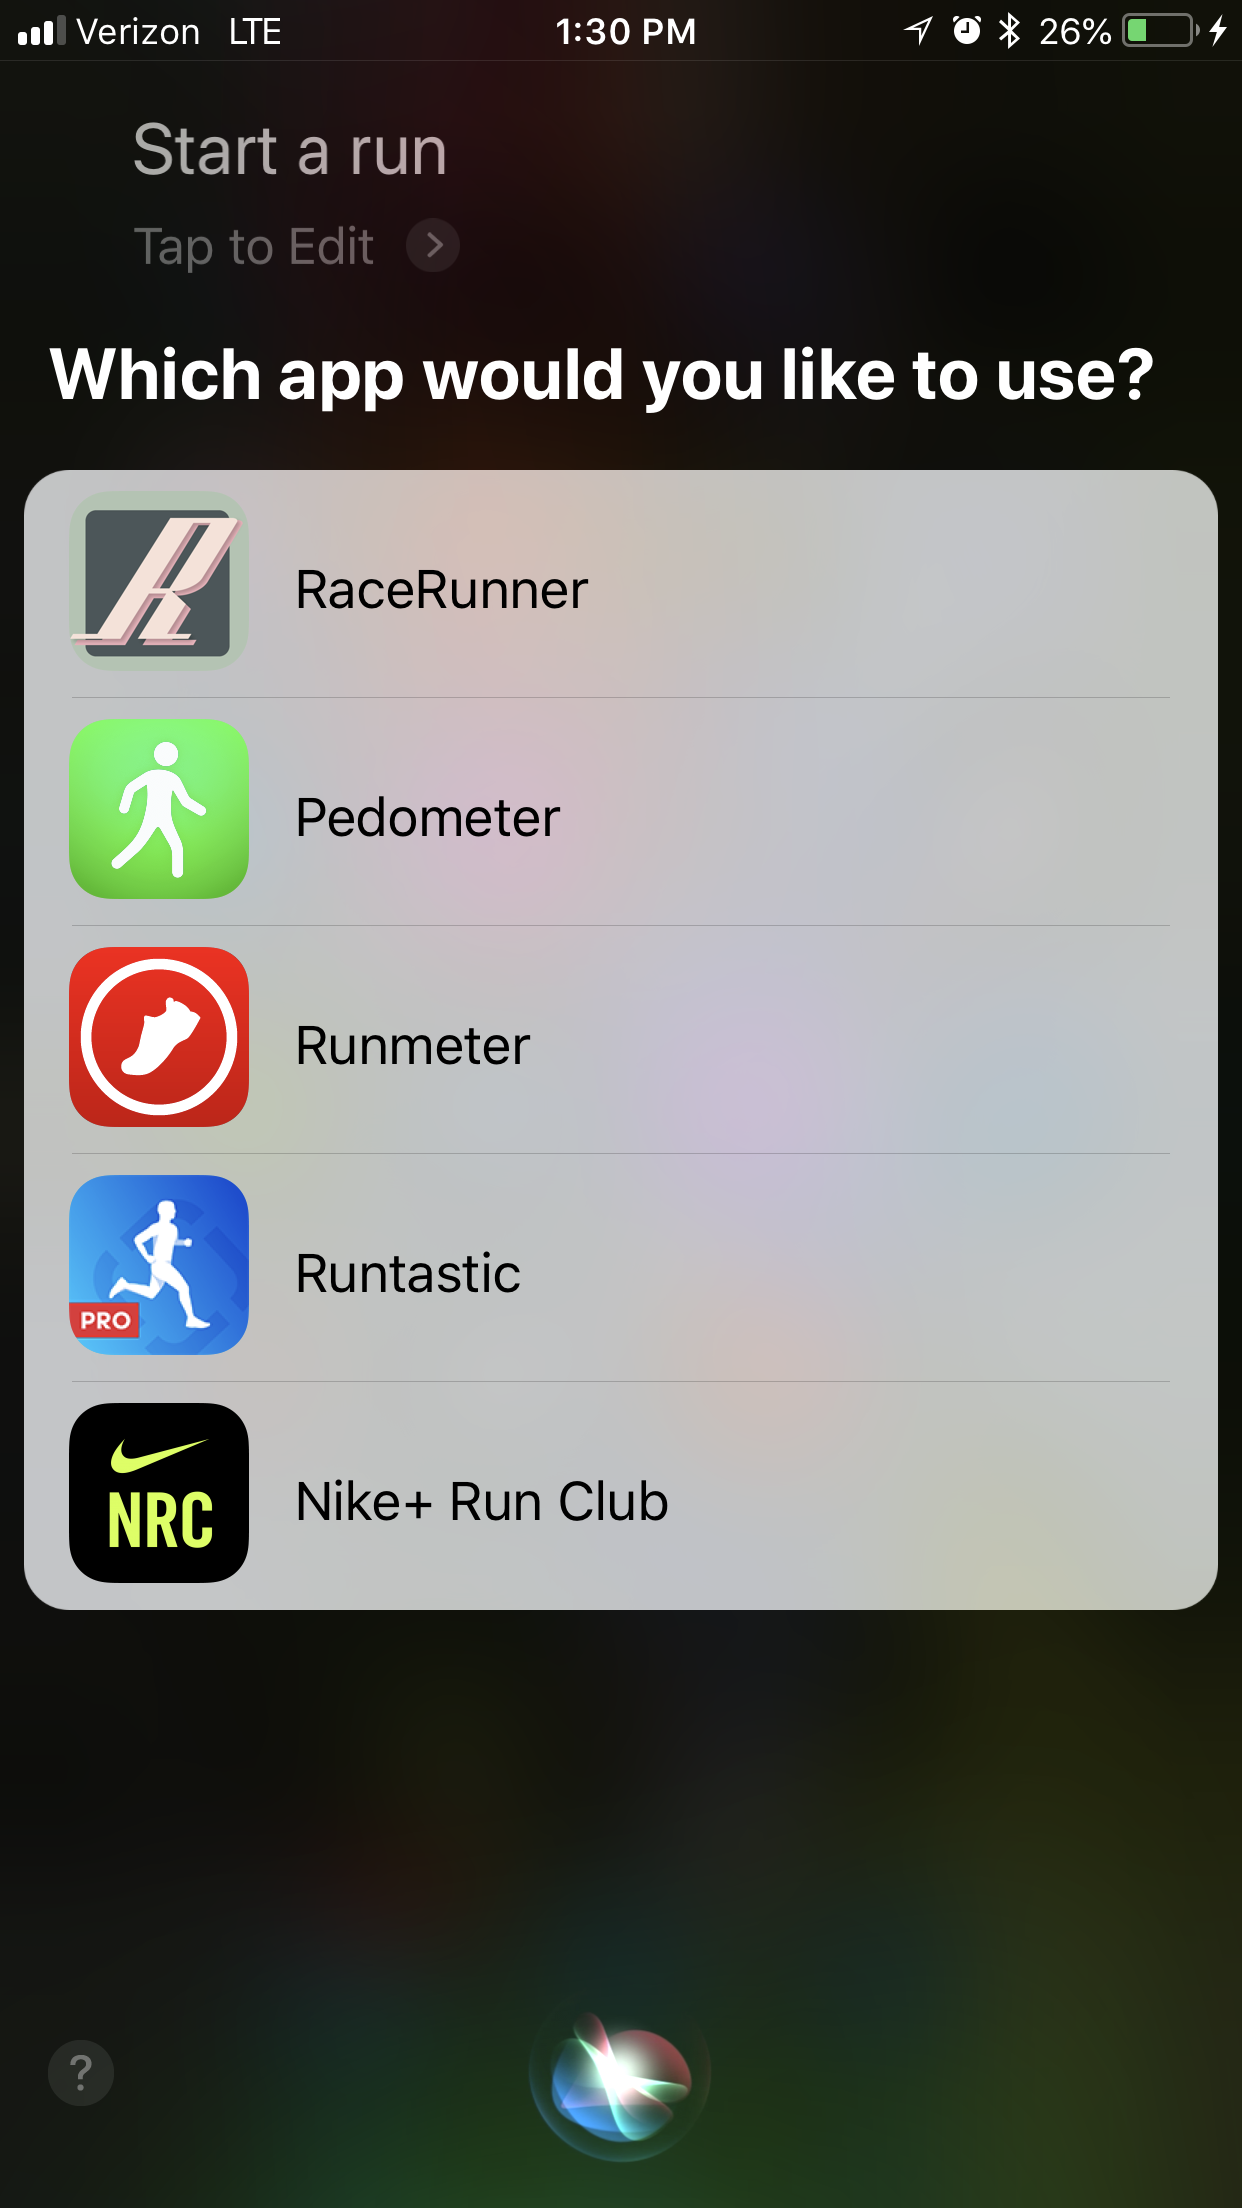 Generic Workout Initiated via Siri